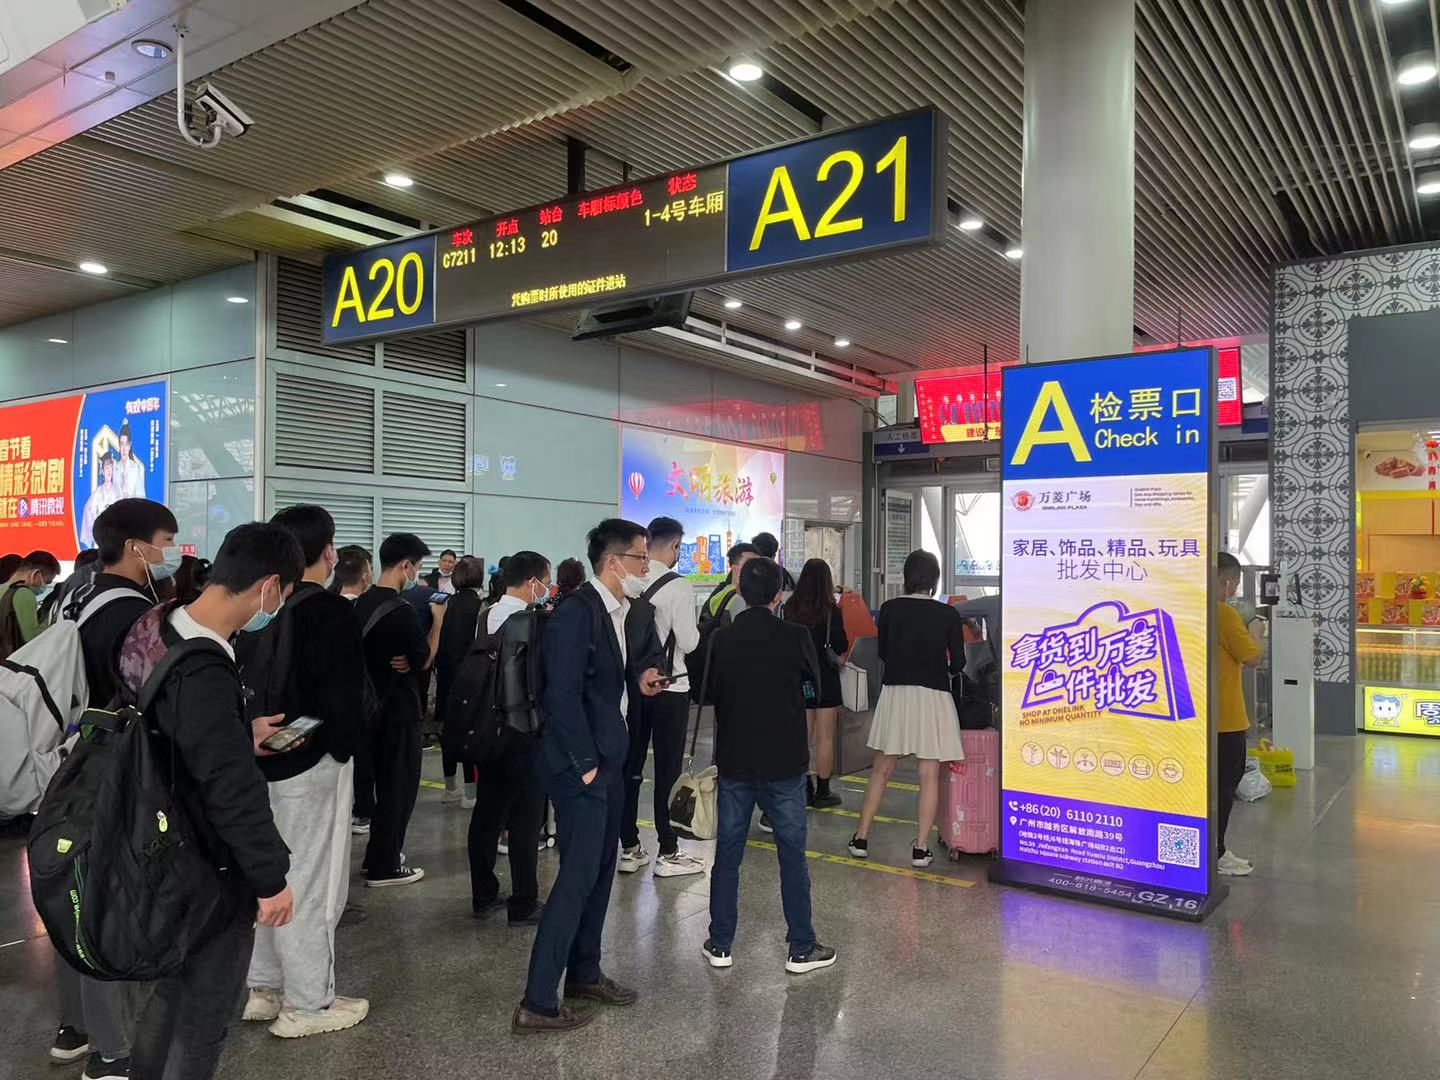 At the peak of the exhibition passenger flow in March, Wanling once again seized the